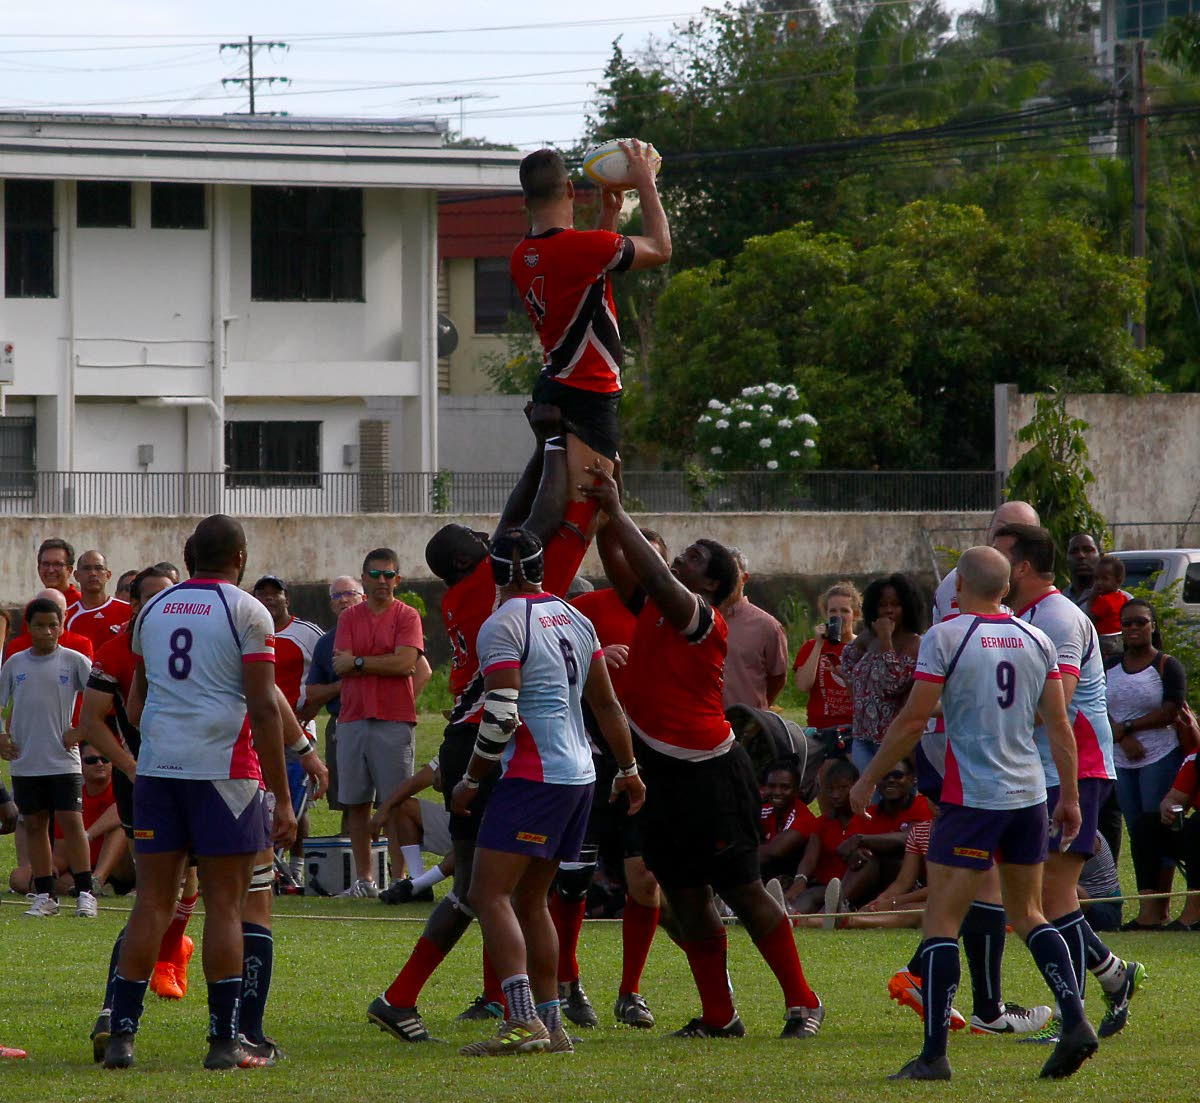 A line-out between Trinidad and Tobago and Bermuda in the RAN Men's 15 Tournament in May this year.